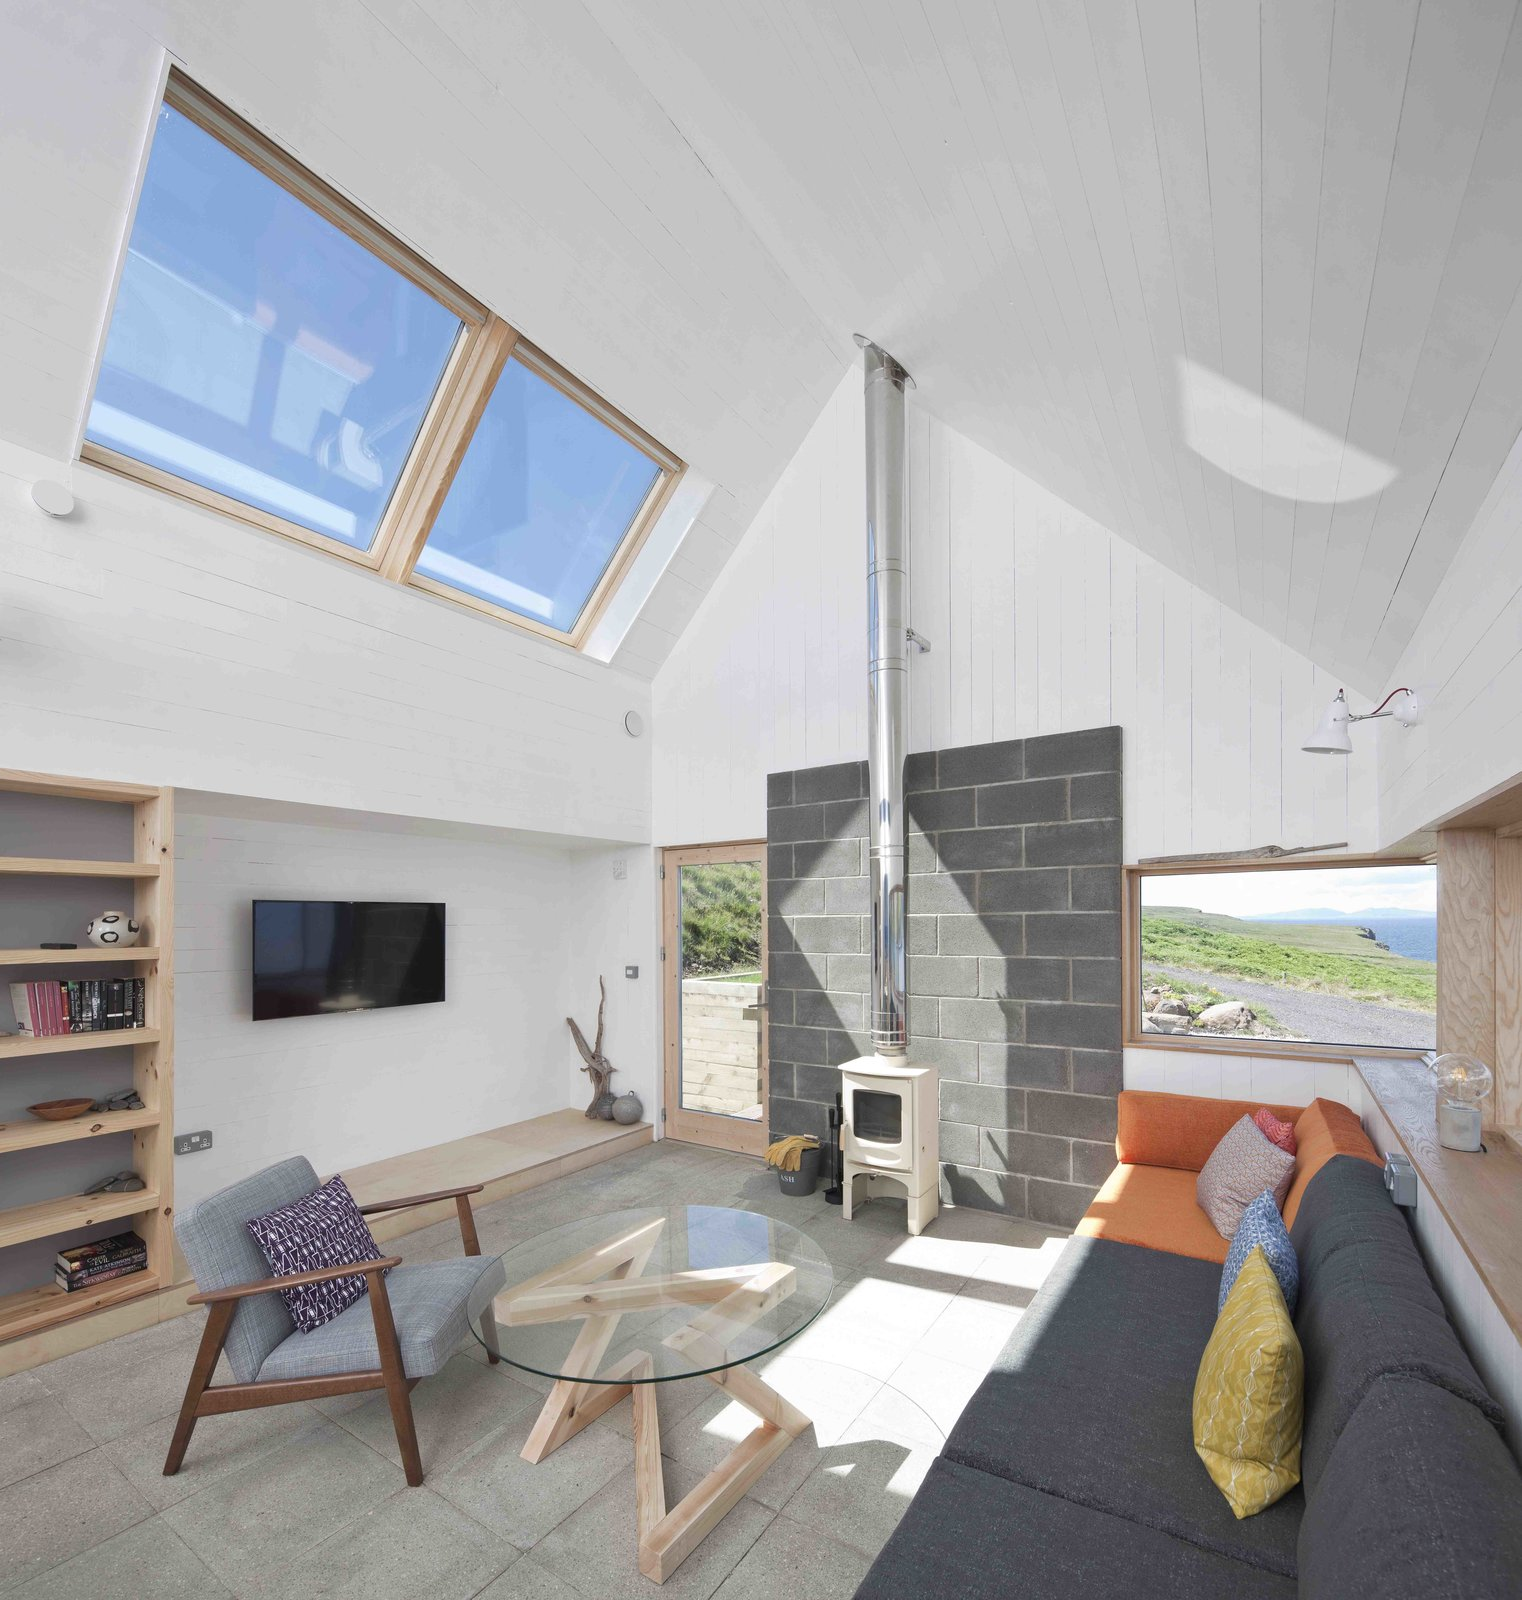 Living Room, Sofa, Coffee Tables, Shelves, Chair, Concrete Floor, Bookcase, Wall Lighting, and Wood Burning Fireplace  Photo 2 of 11 in Stay in a Modern Tin Cottage on Scotland's Isle of Skye